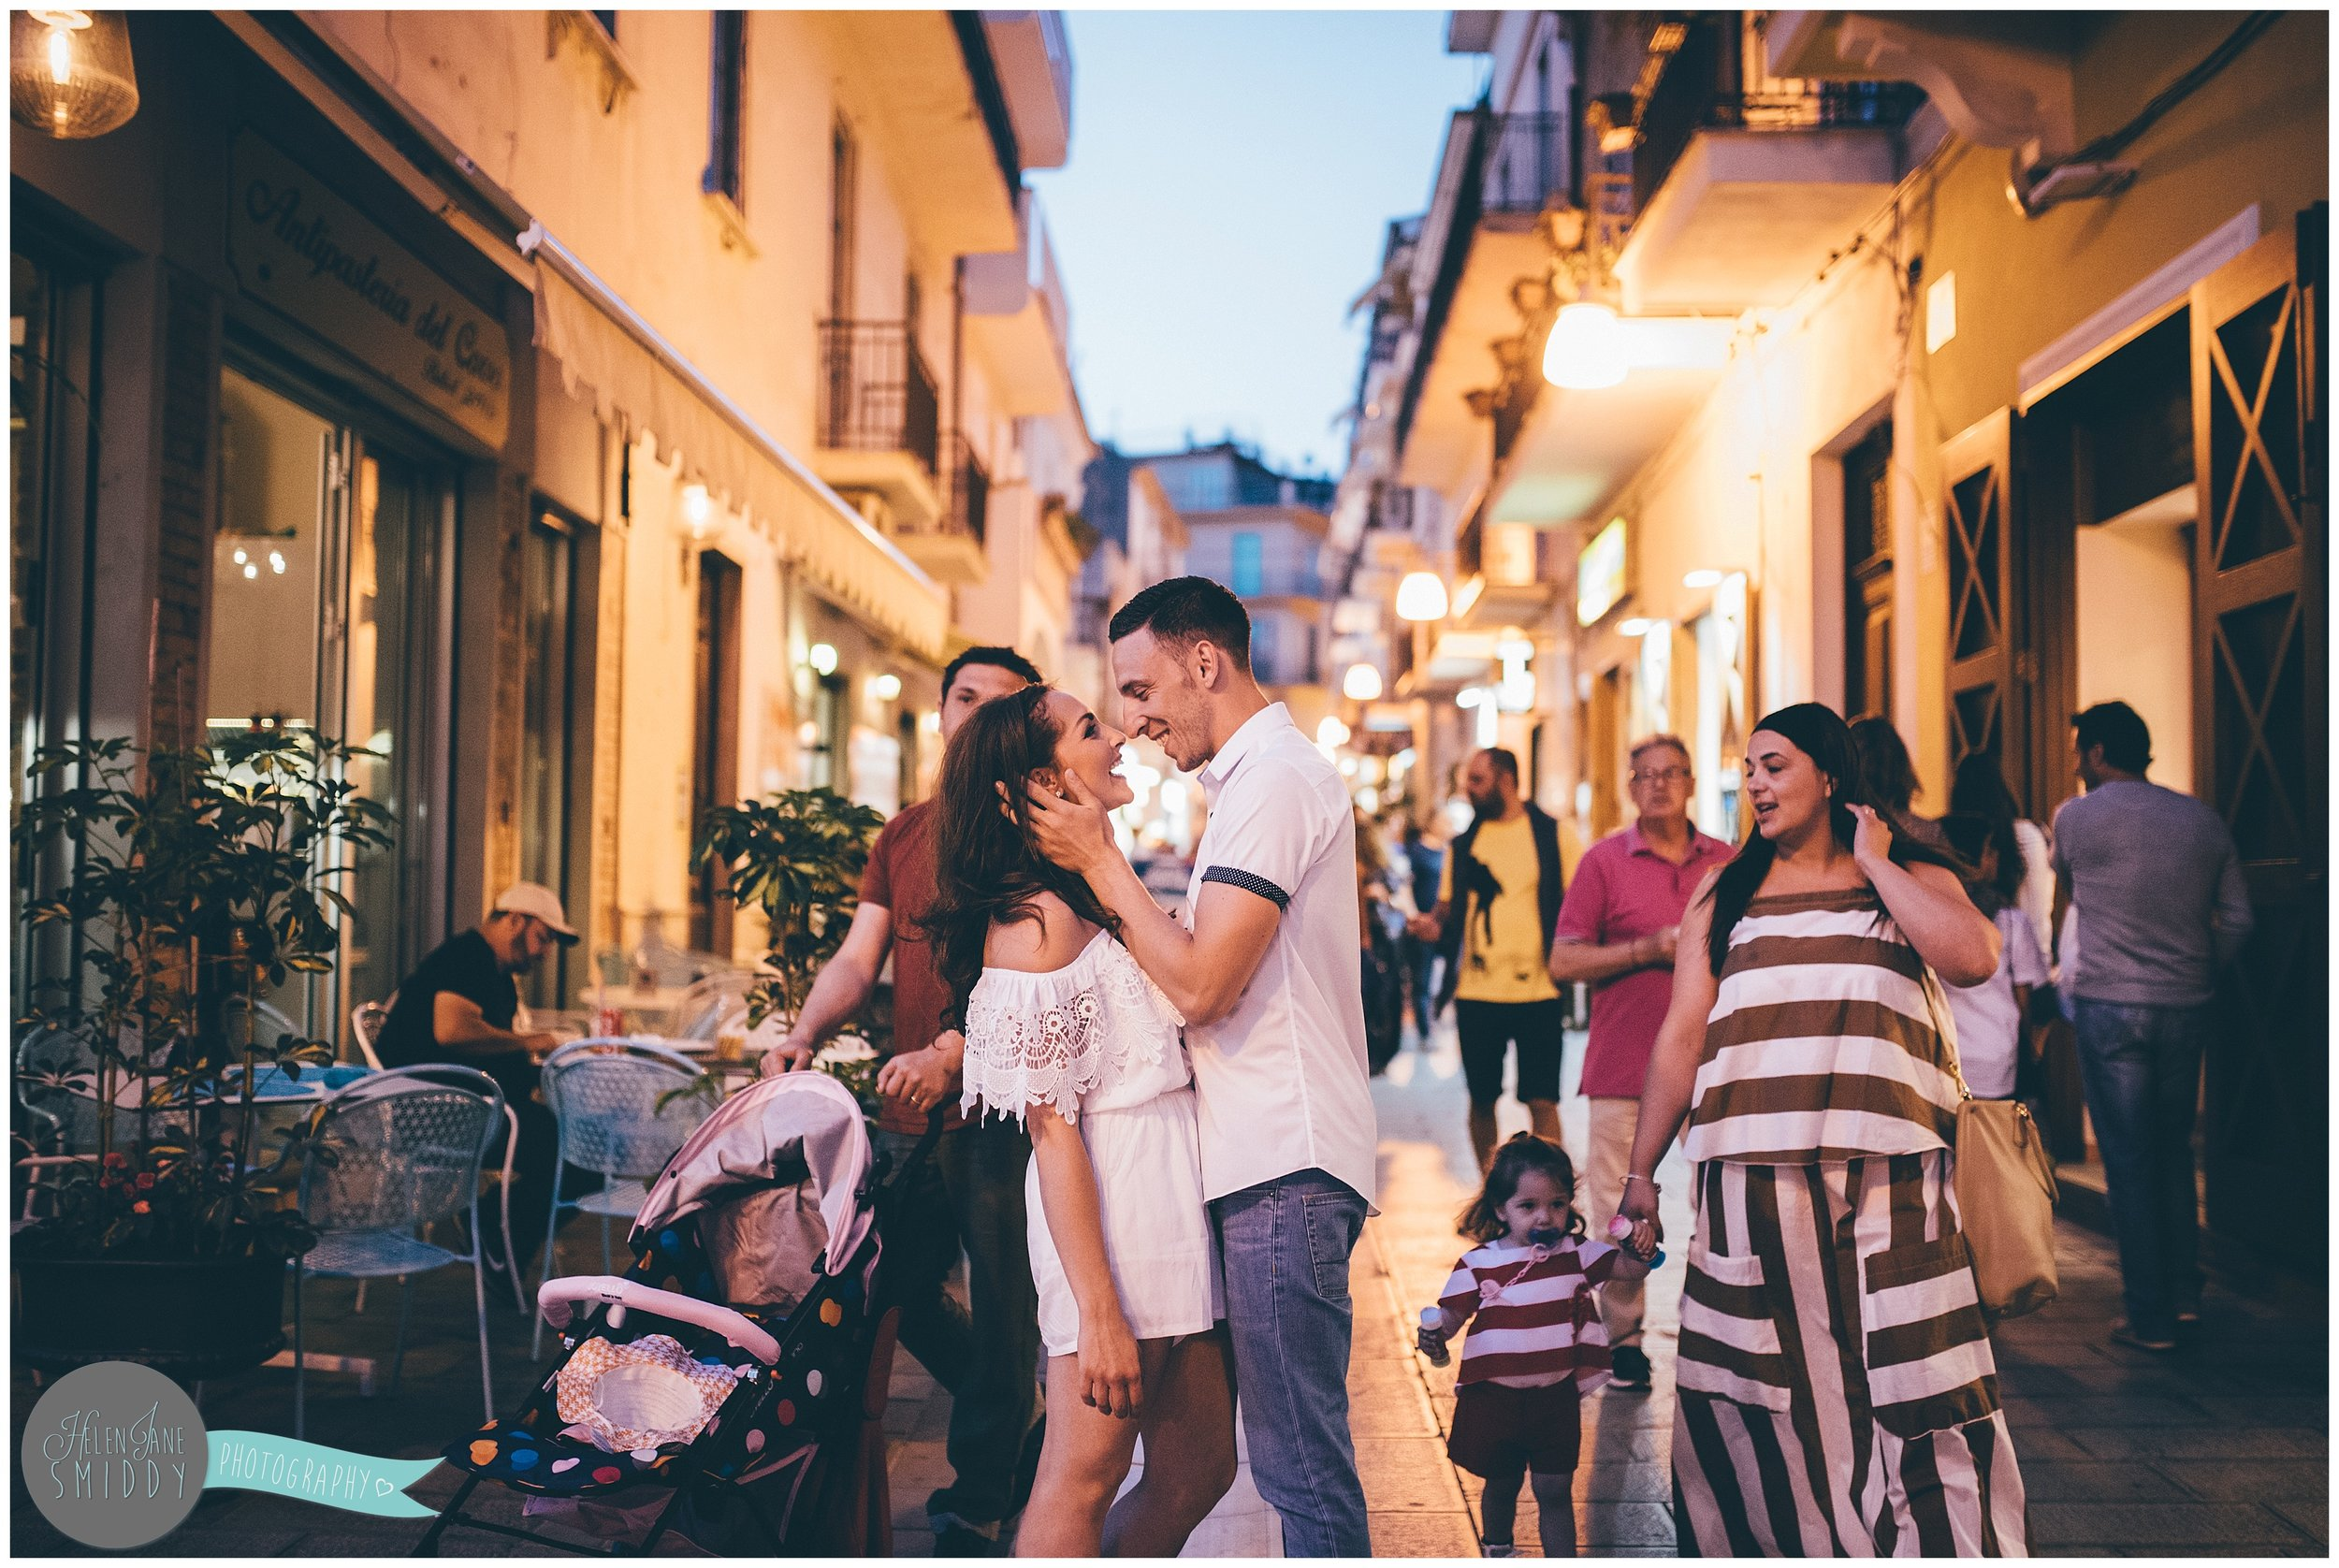 A sunset engagement shoot in a beautiful old Italian town.